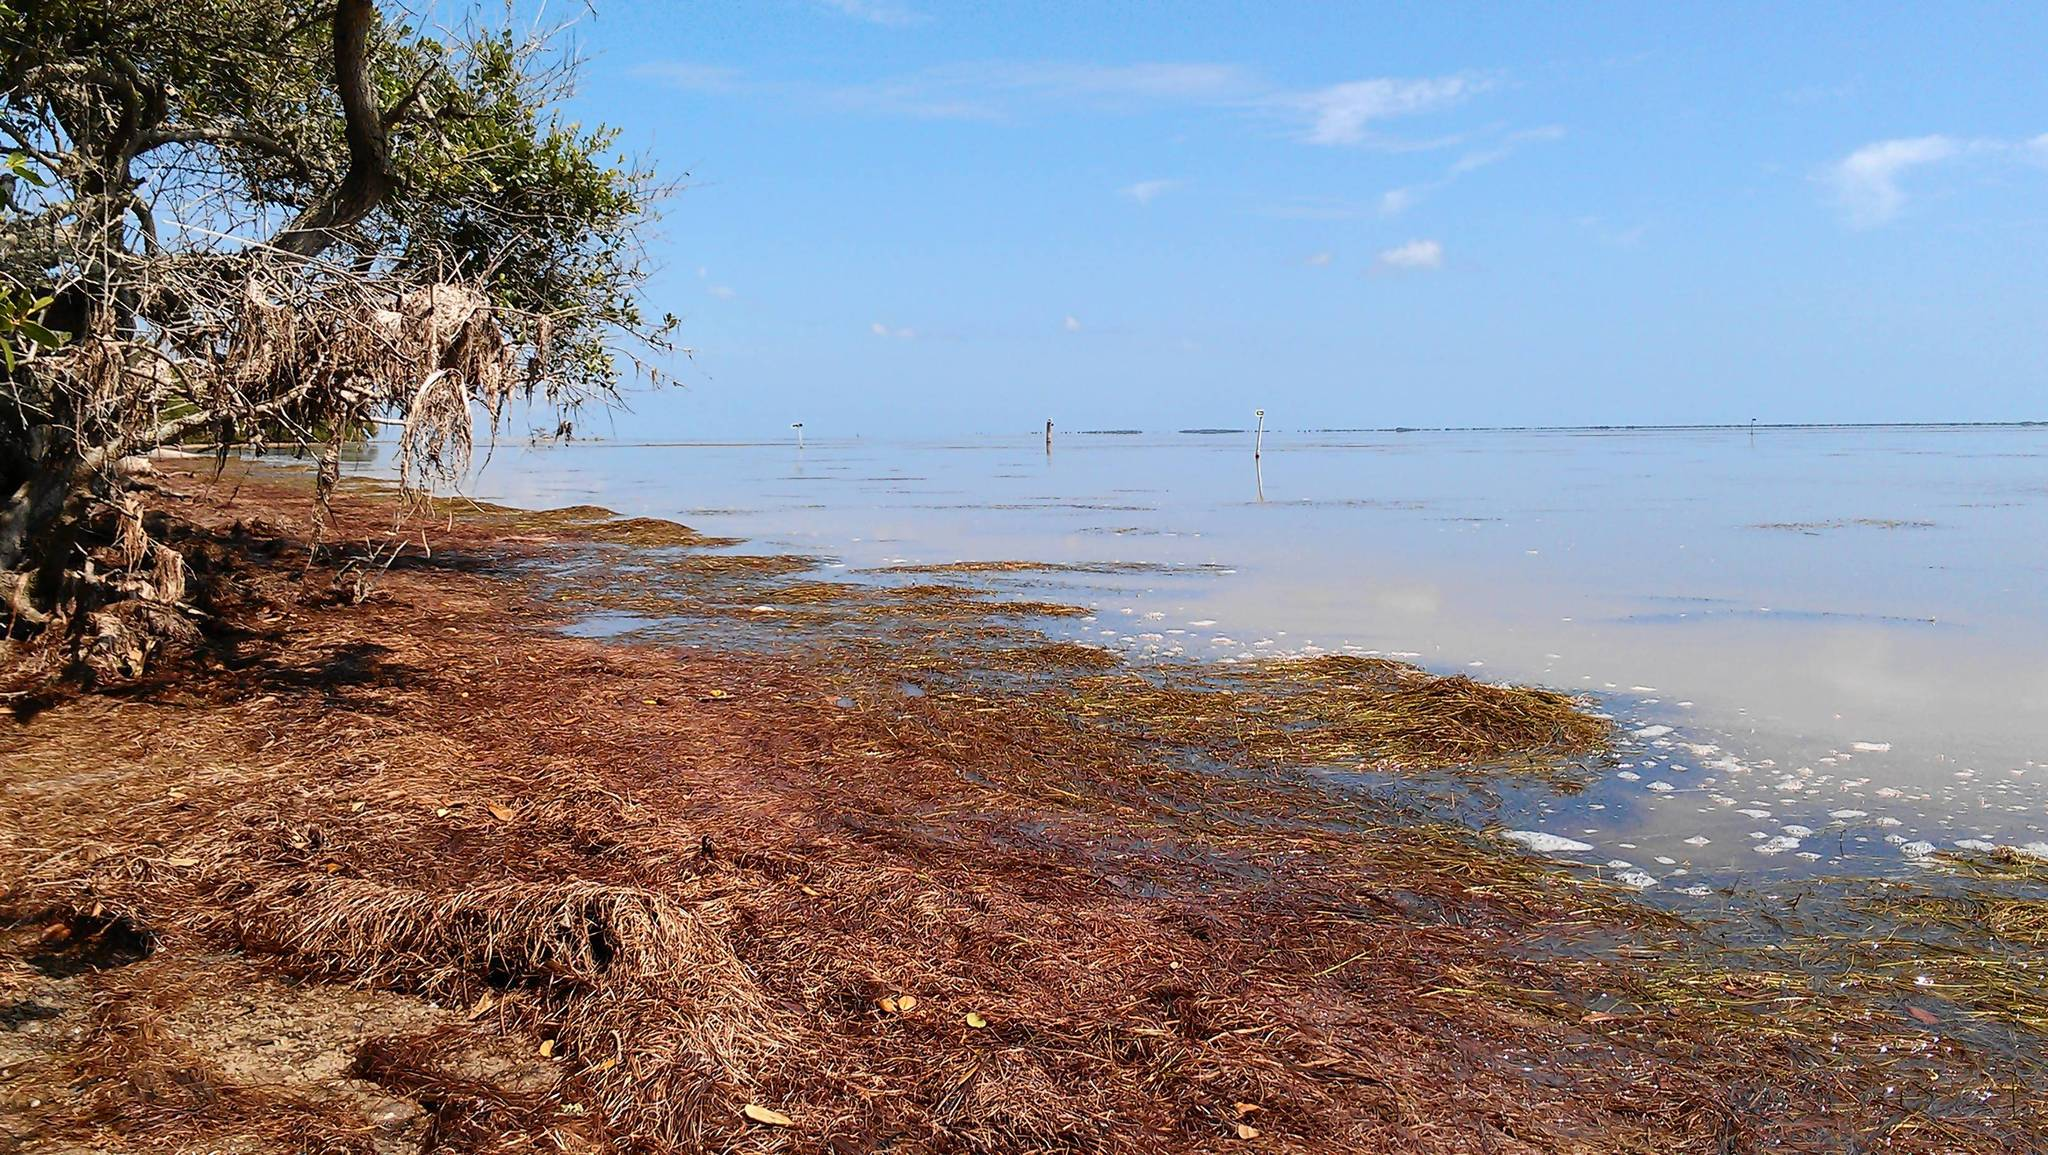 Dead sea grass piles up on the shores of the Indian River Lagoon. Scientists think an intense algae bloom occurring in lagoon waters is blocking sunlight that sea grass needs to survive. (Kevin Spear, Orlando Sentinel)